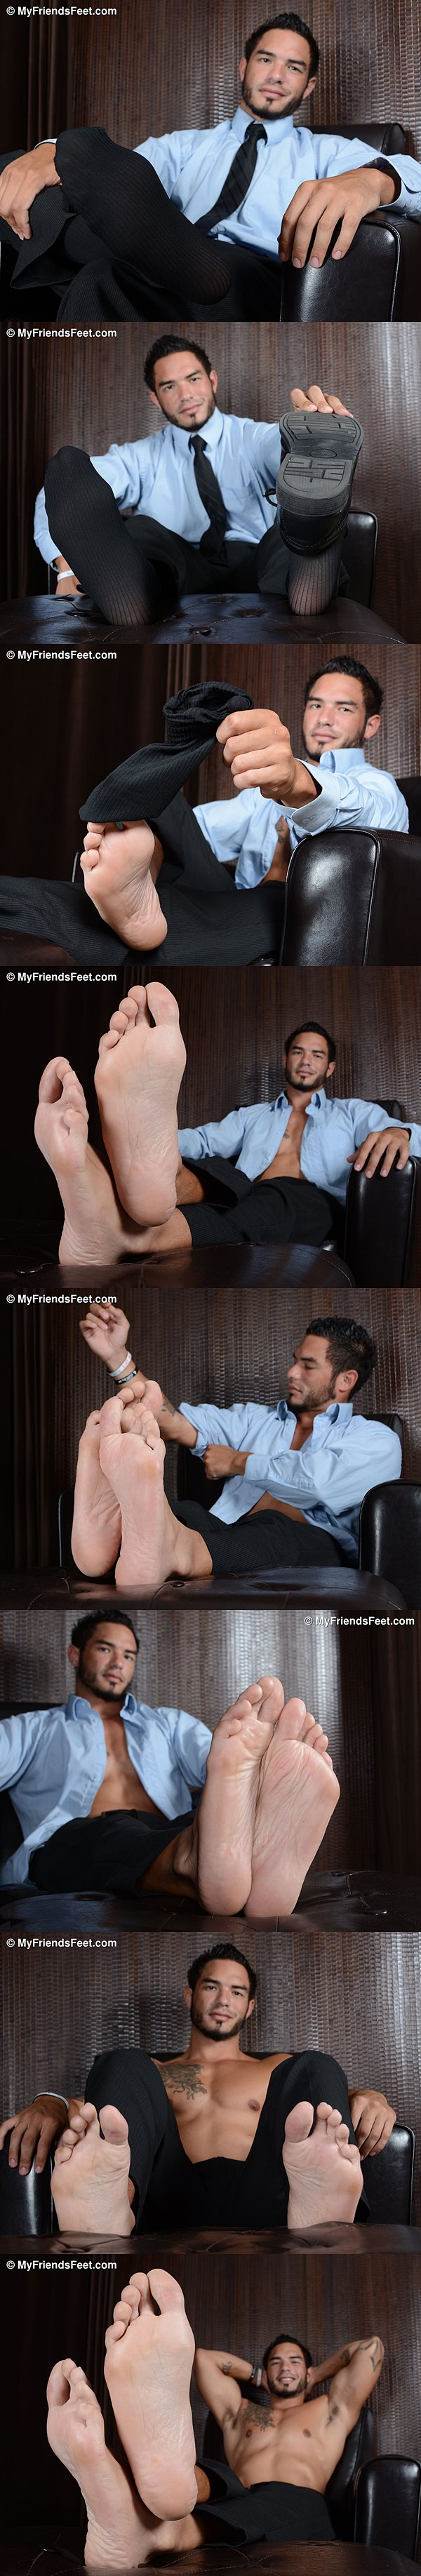 Hot masculine hunk RJ gets his big feet worshiped at Myfriendsfeet